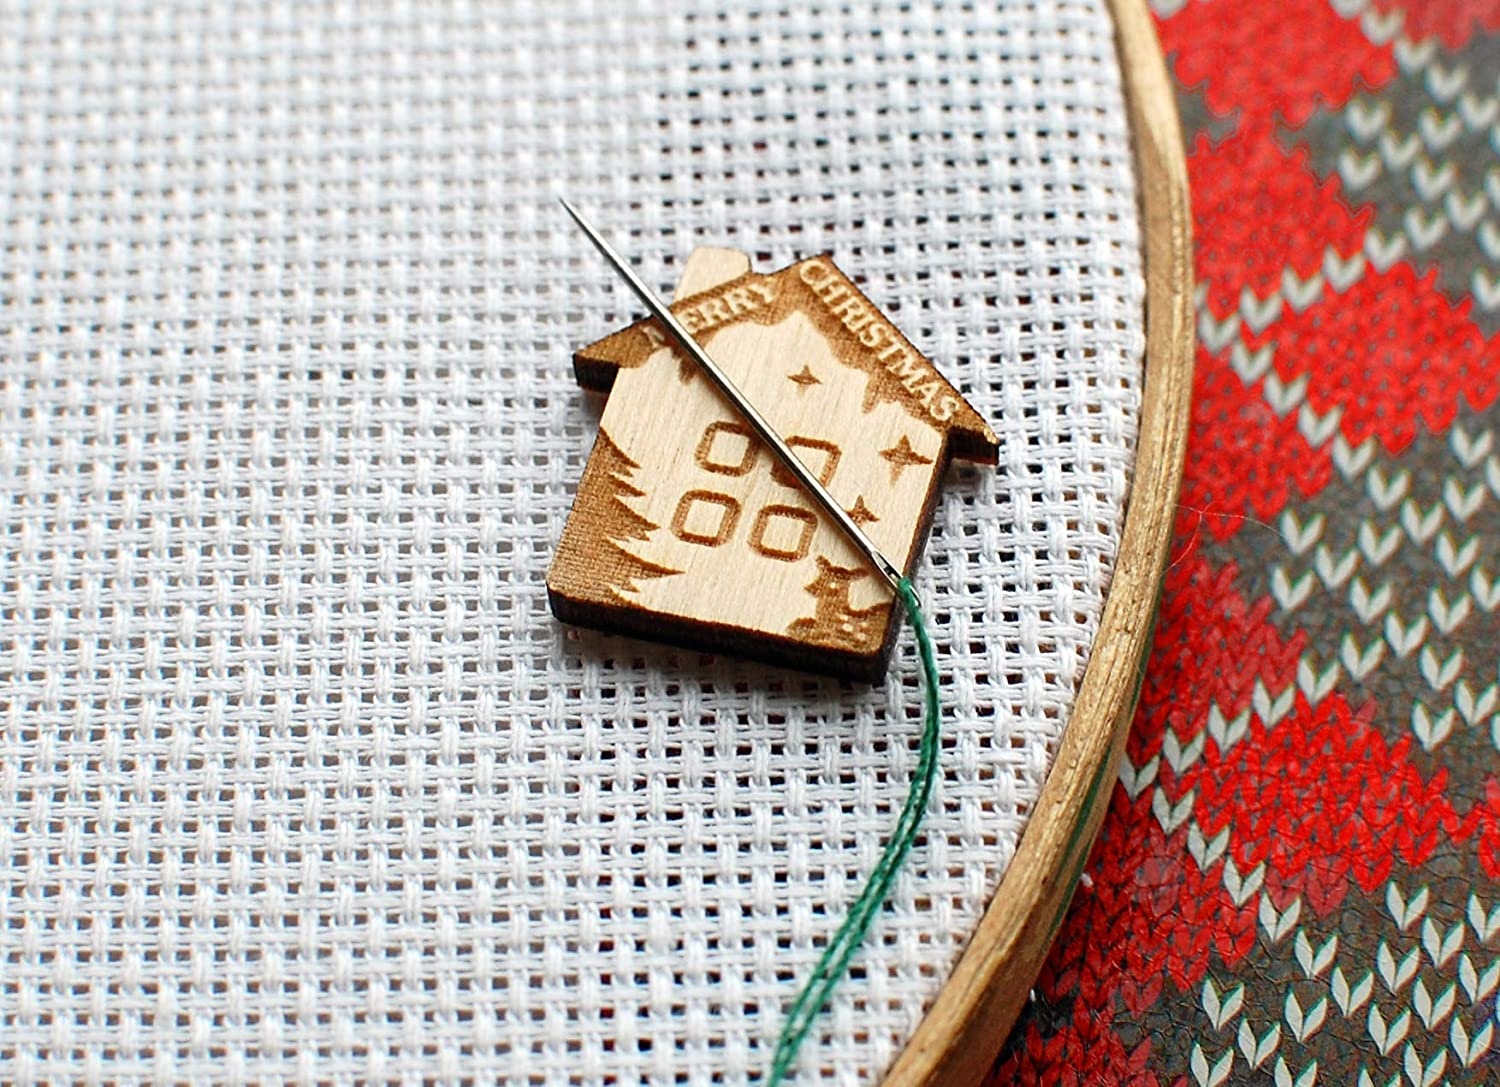 Sewing- V Strong Magnet Magnetic Wooden Needle Minder Cross Stitch Embroidery